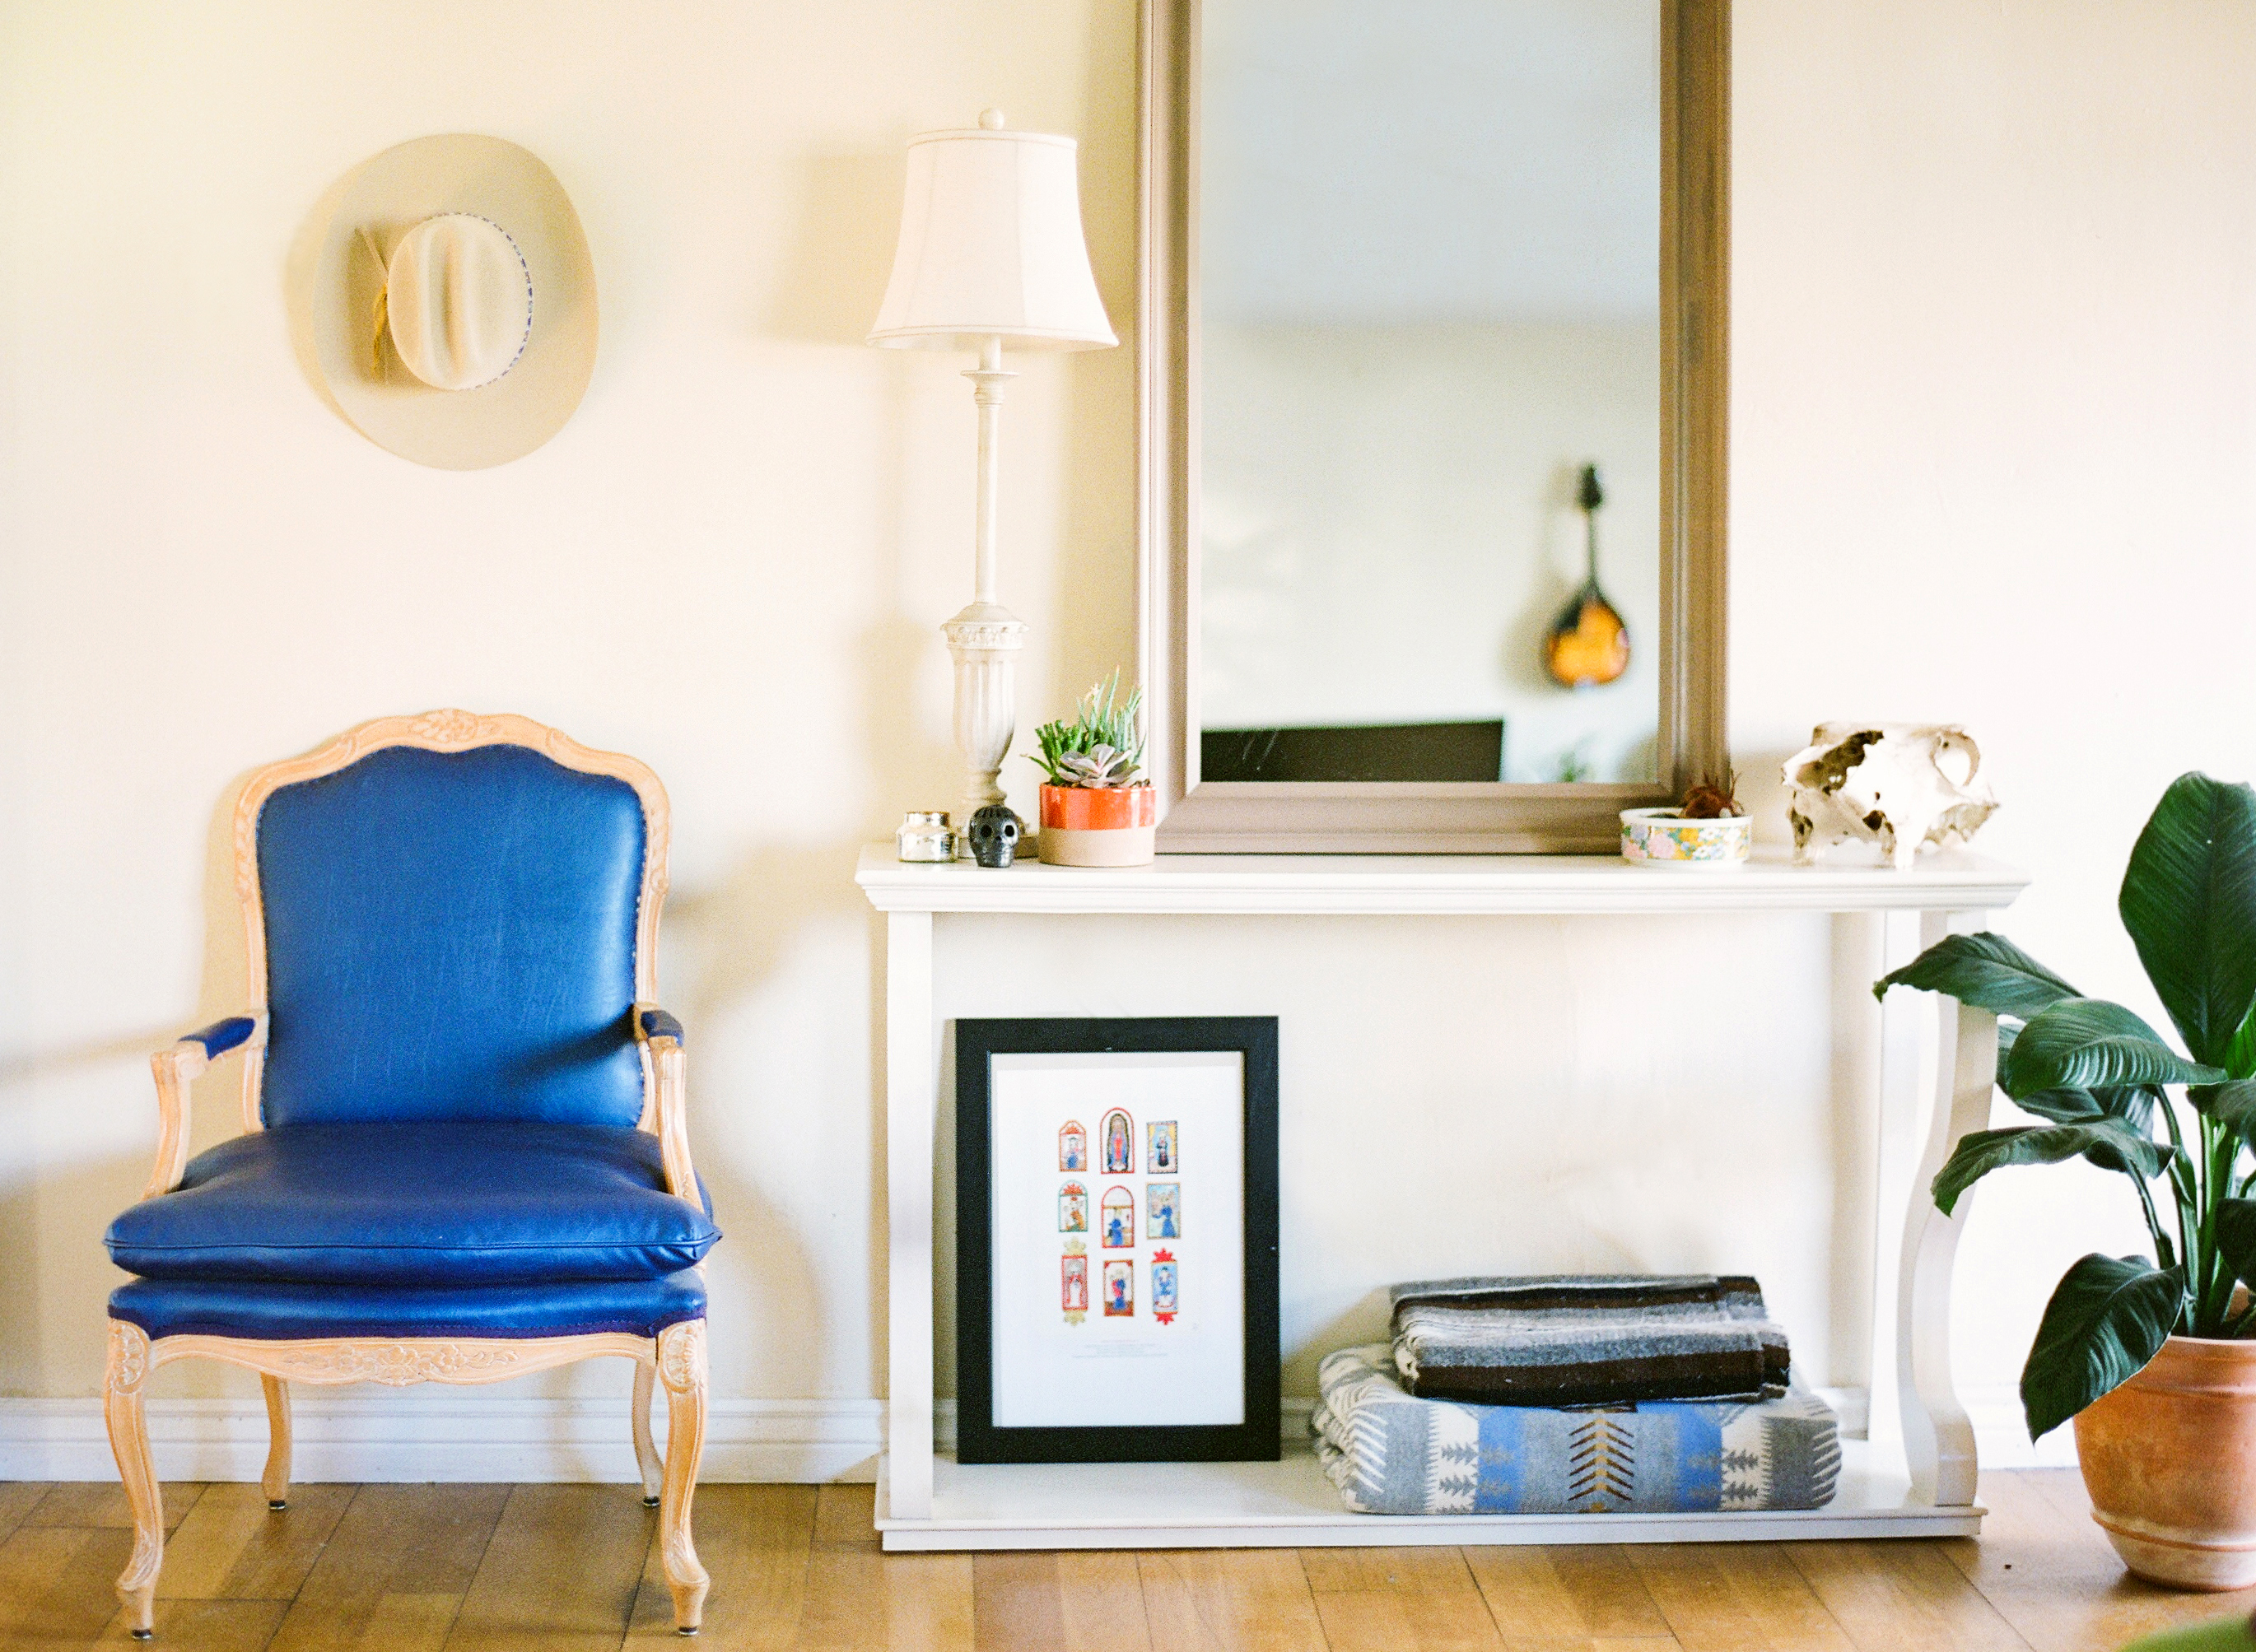 Room of the Week: Southwestern Living Room